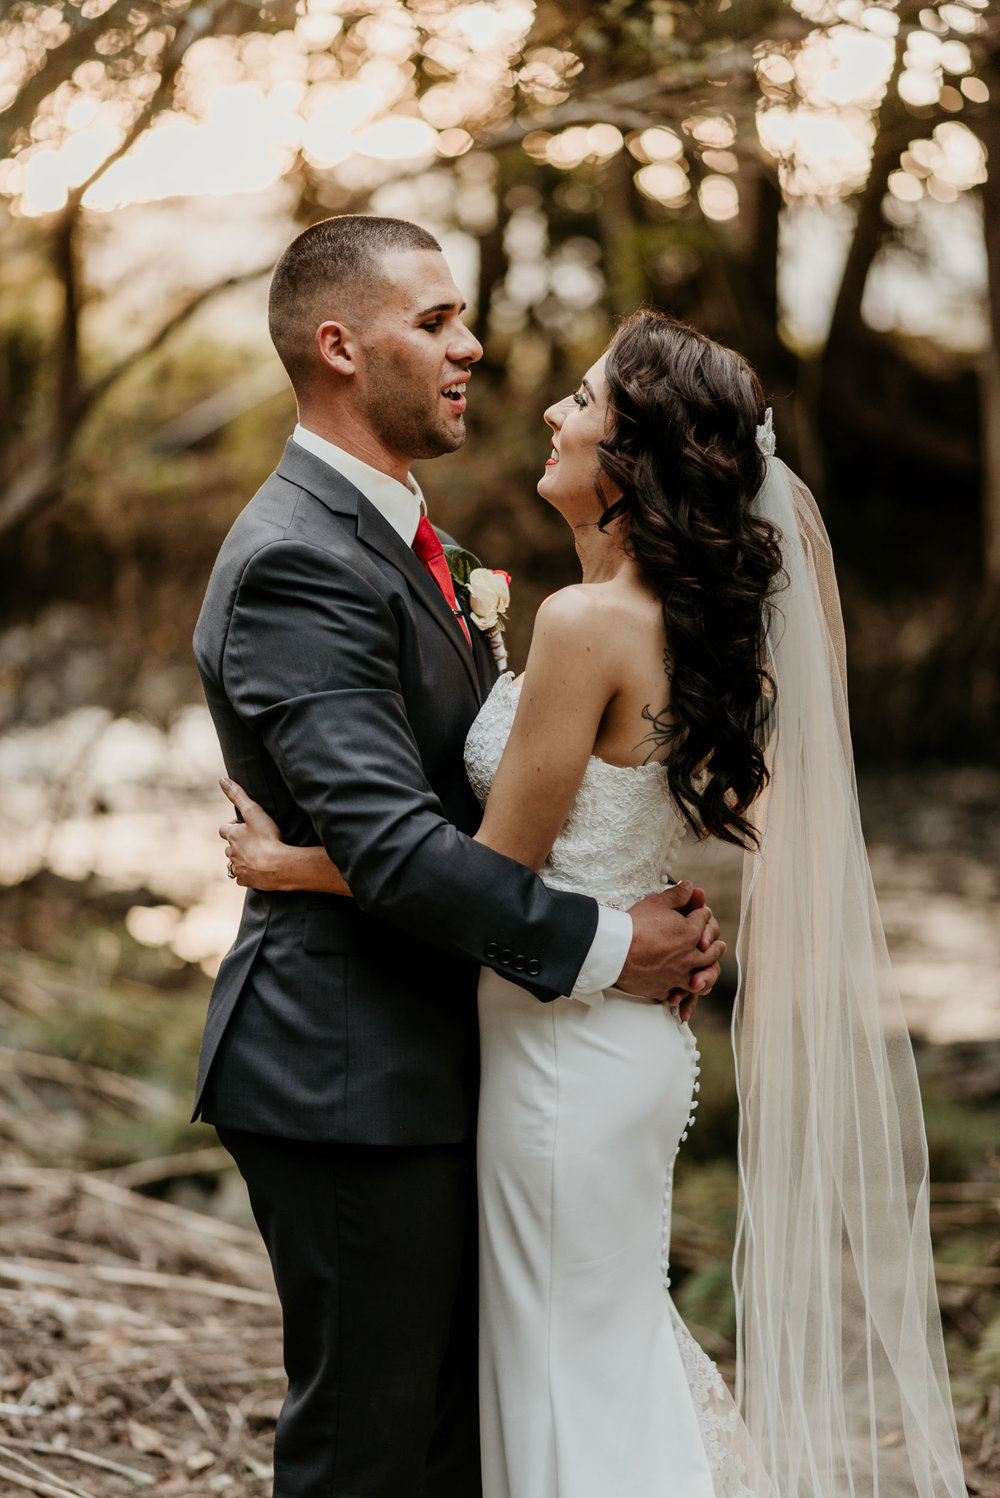 The Raw Photographer - Cairns Wedding Photographer - Laloli Garden Ceremony - Queensland Photography - Bride Dress - Devine Bridal Irene Costa - Destination Wed - CHRIS + KAITLYN-32.jpg